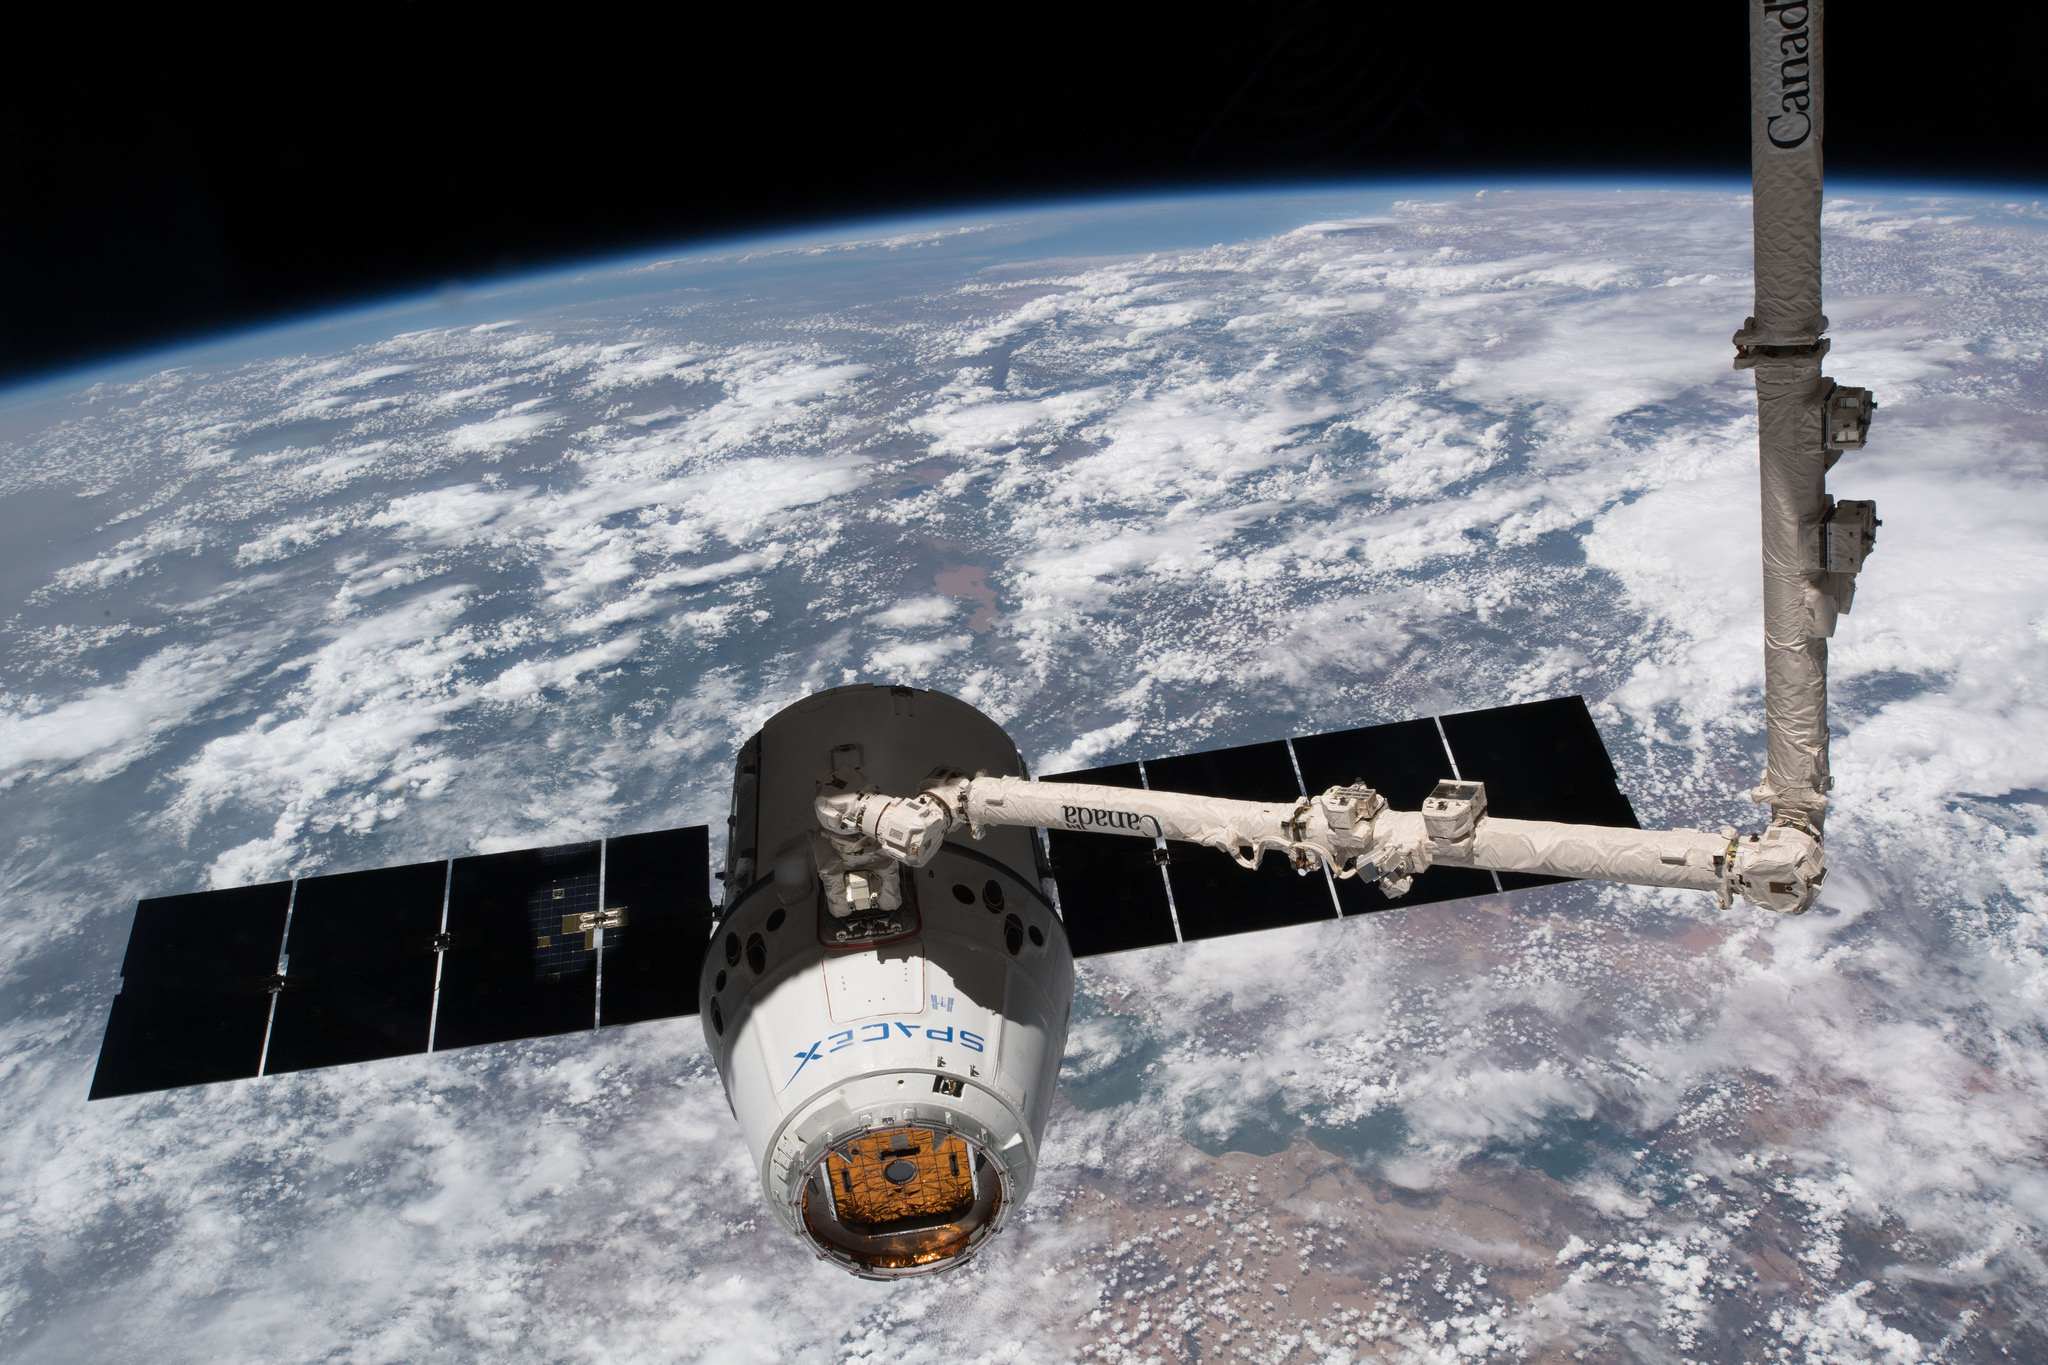 ISS Receives new External Research Facilities & Spare Pump